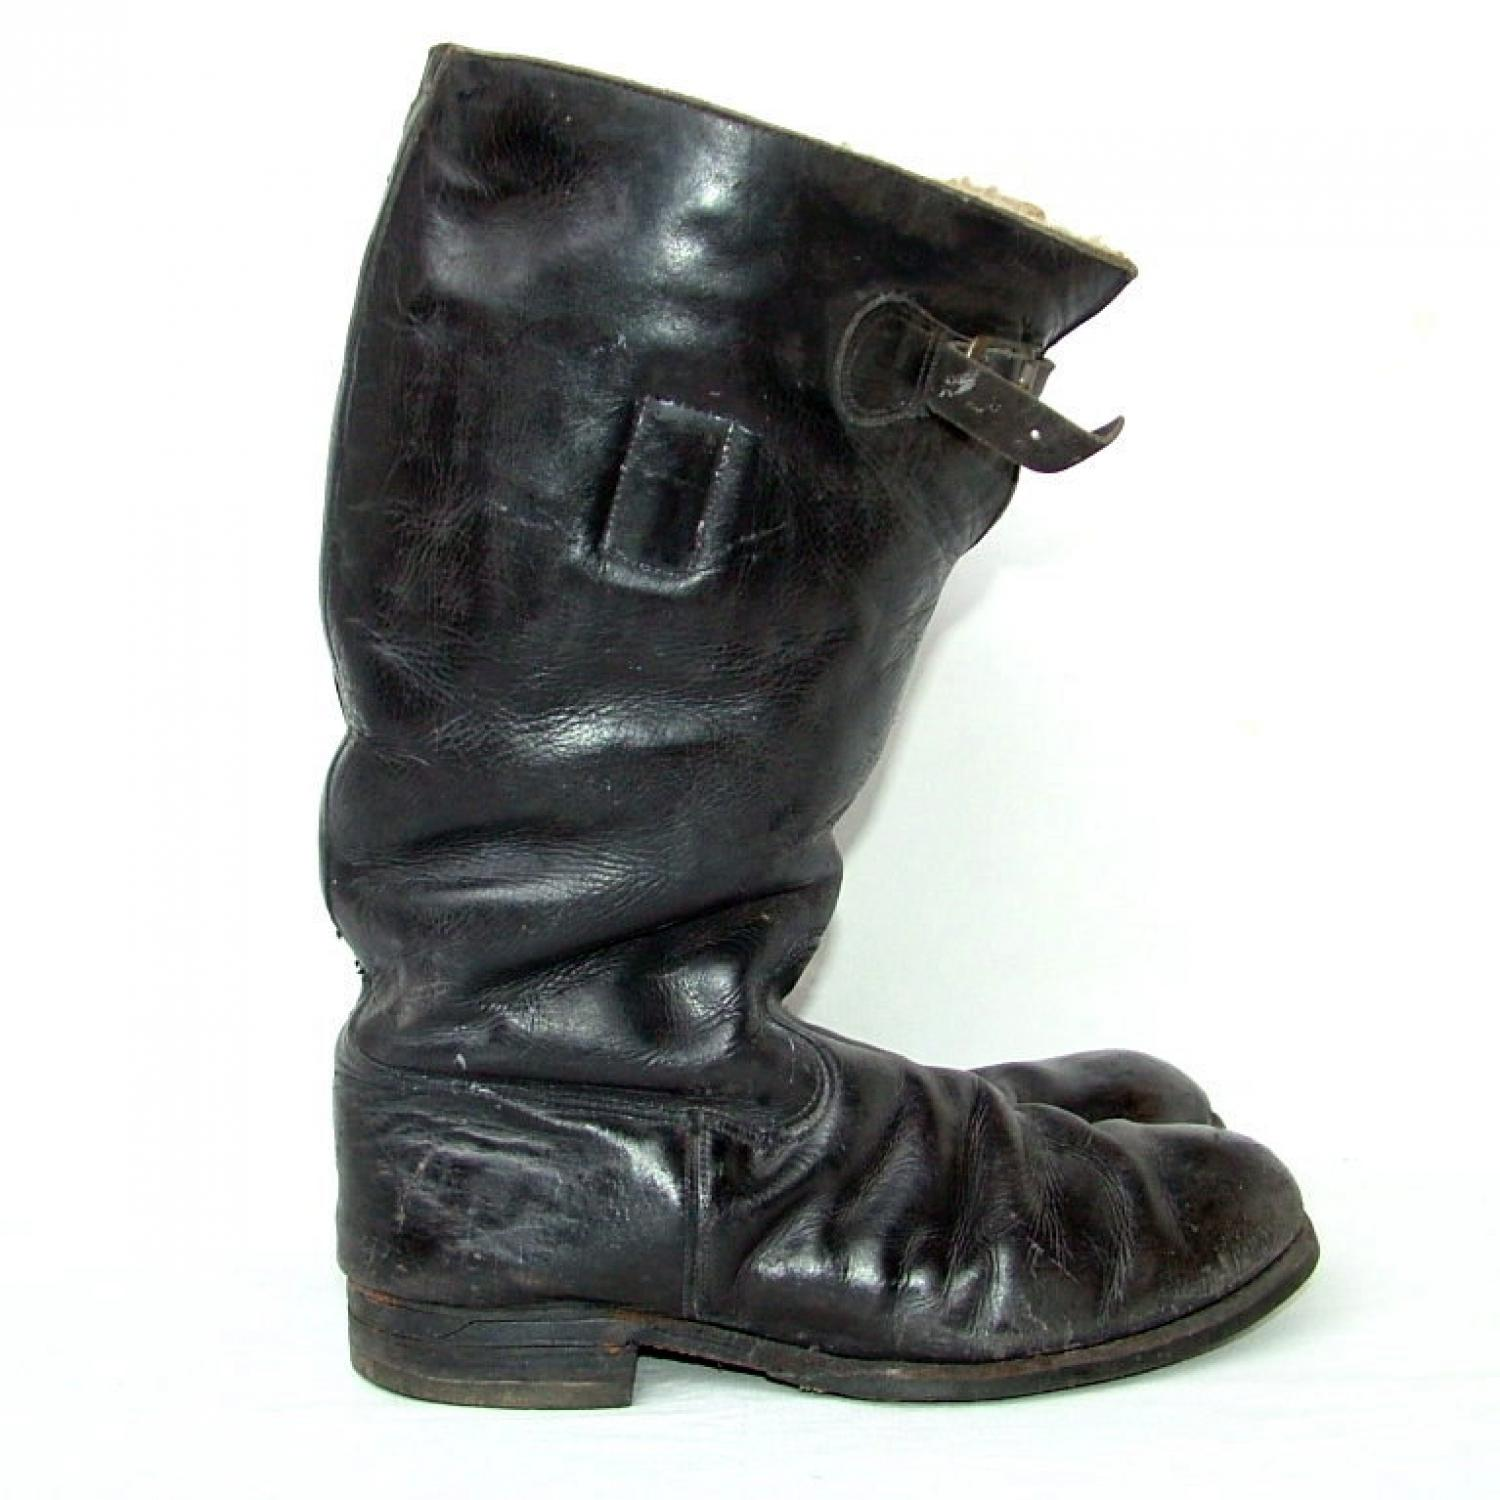 RAF 1936 Pattern Flying Boots - History